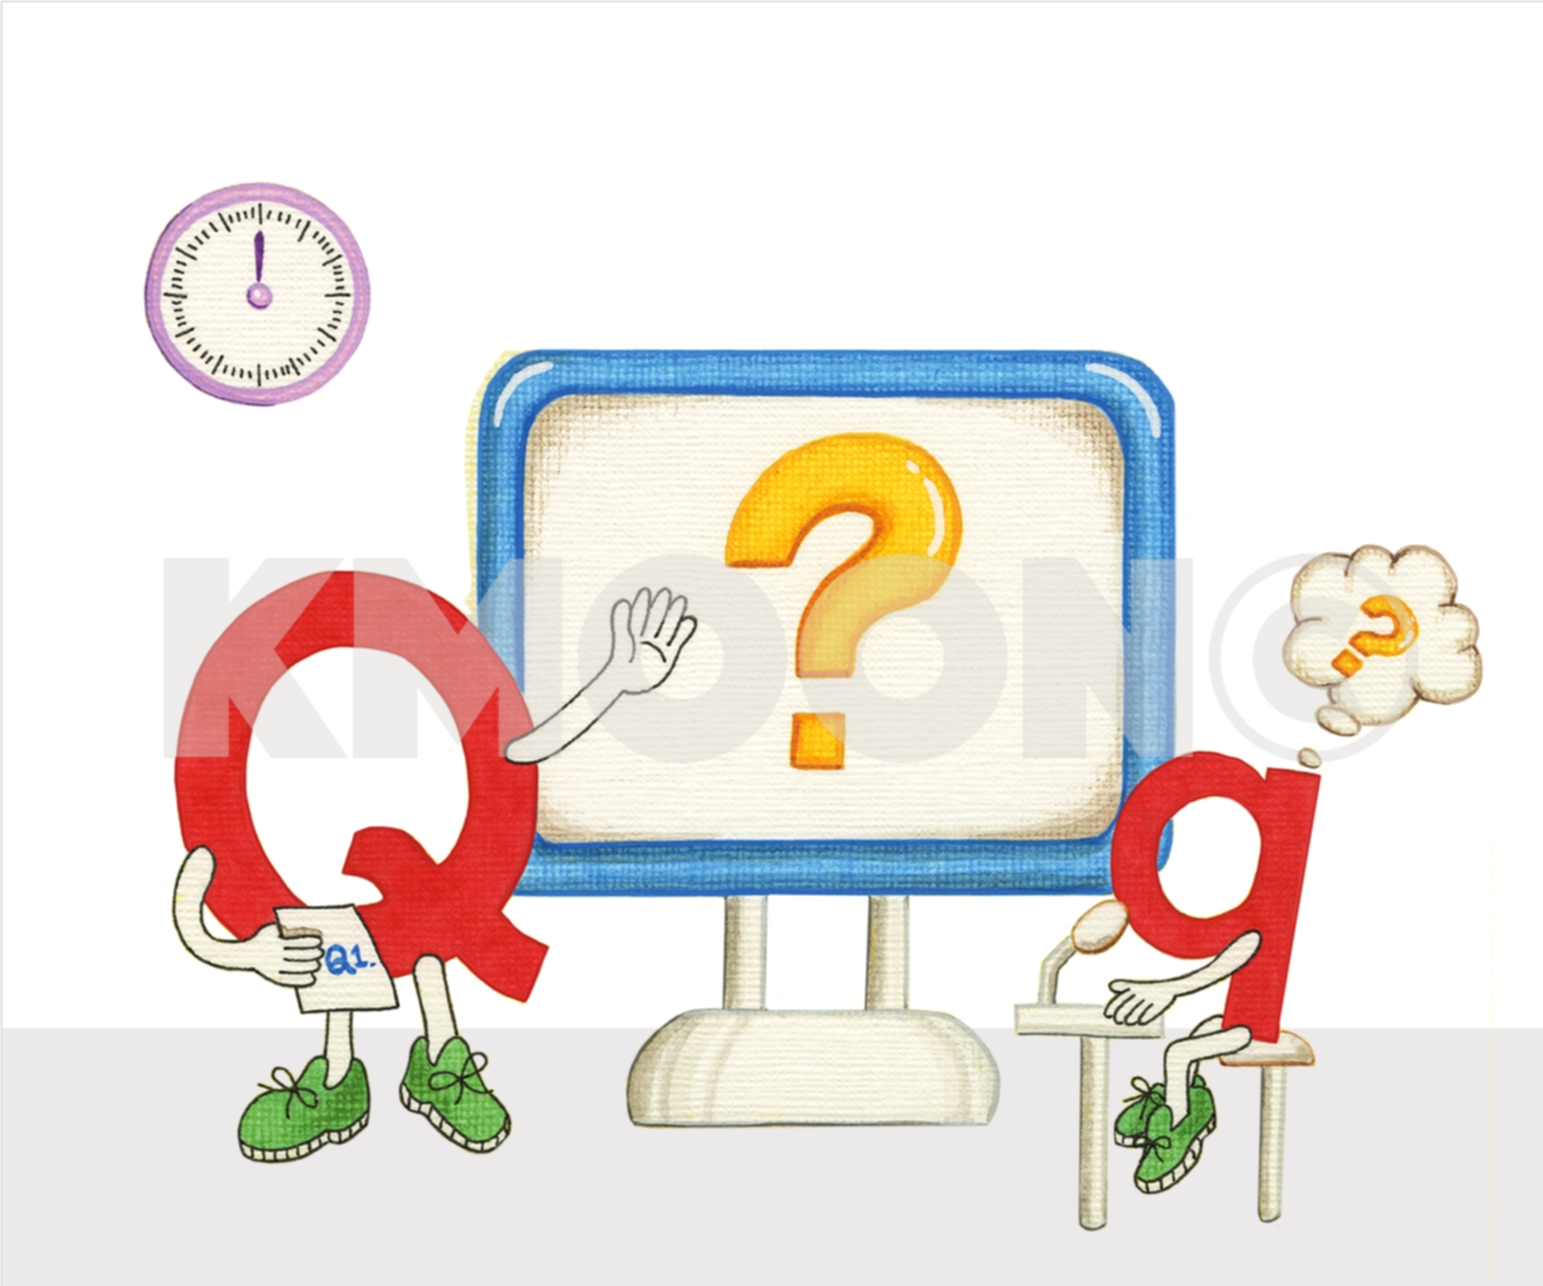 Qq is for ... question